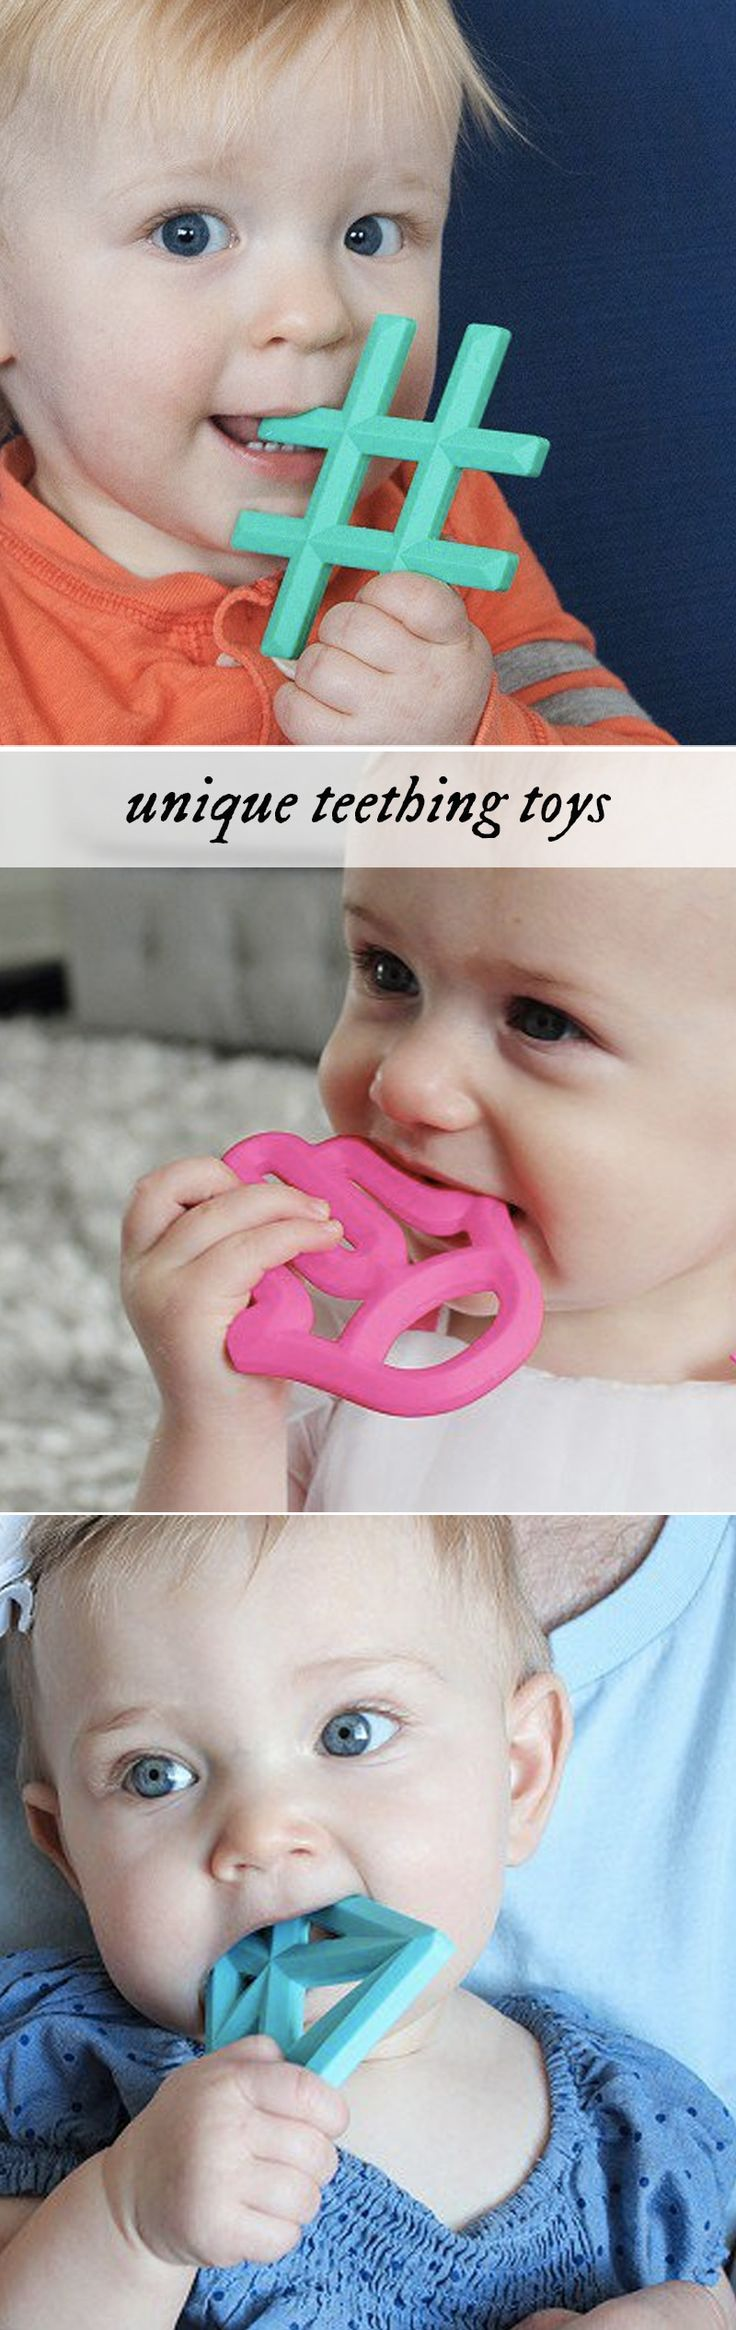 Little Standout Founder Staci Civins created teething toys from her own fresh designs to reflect the interests of modern parents—hip people who appreciate more personality in toys for their little ones.